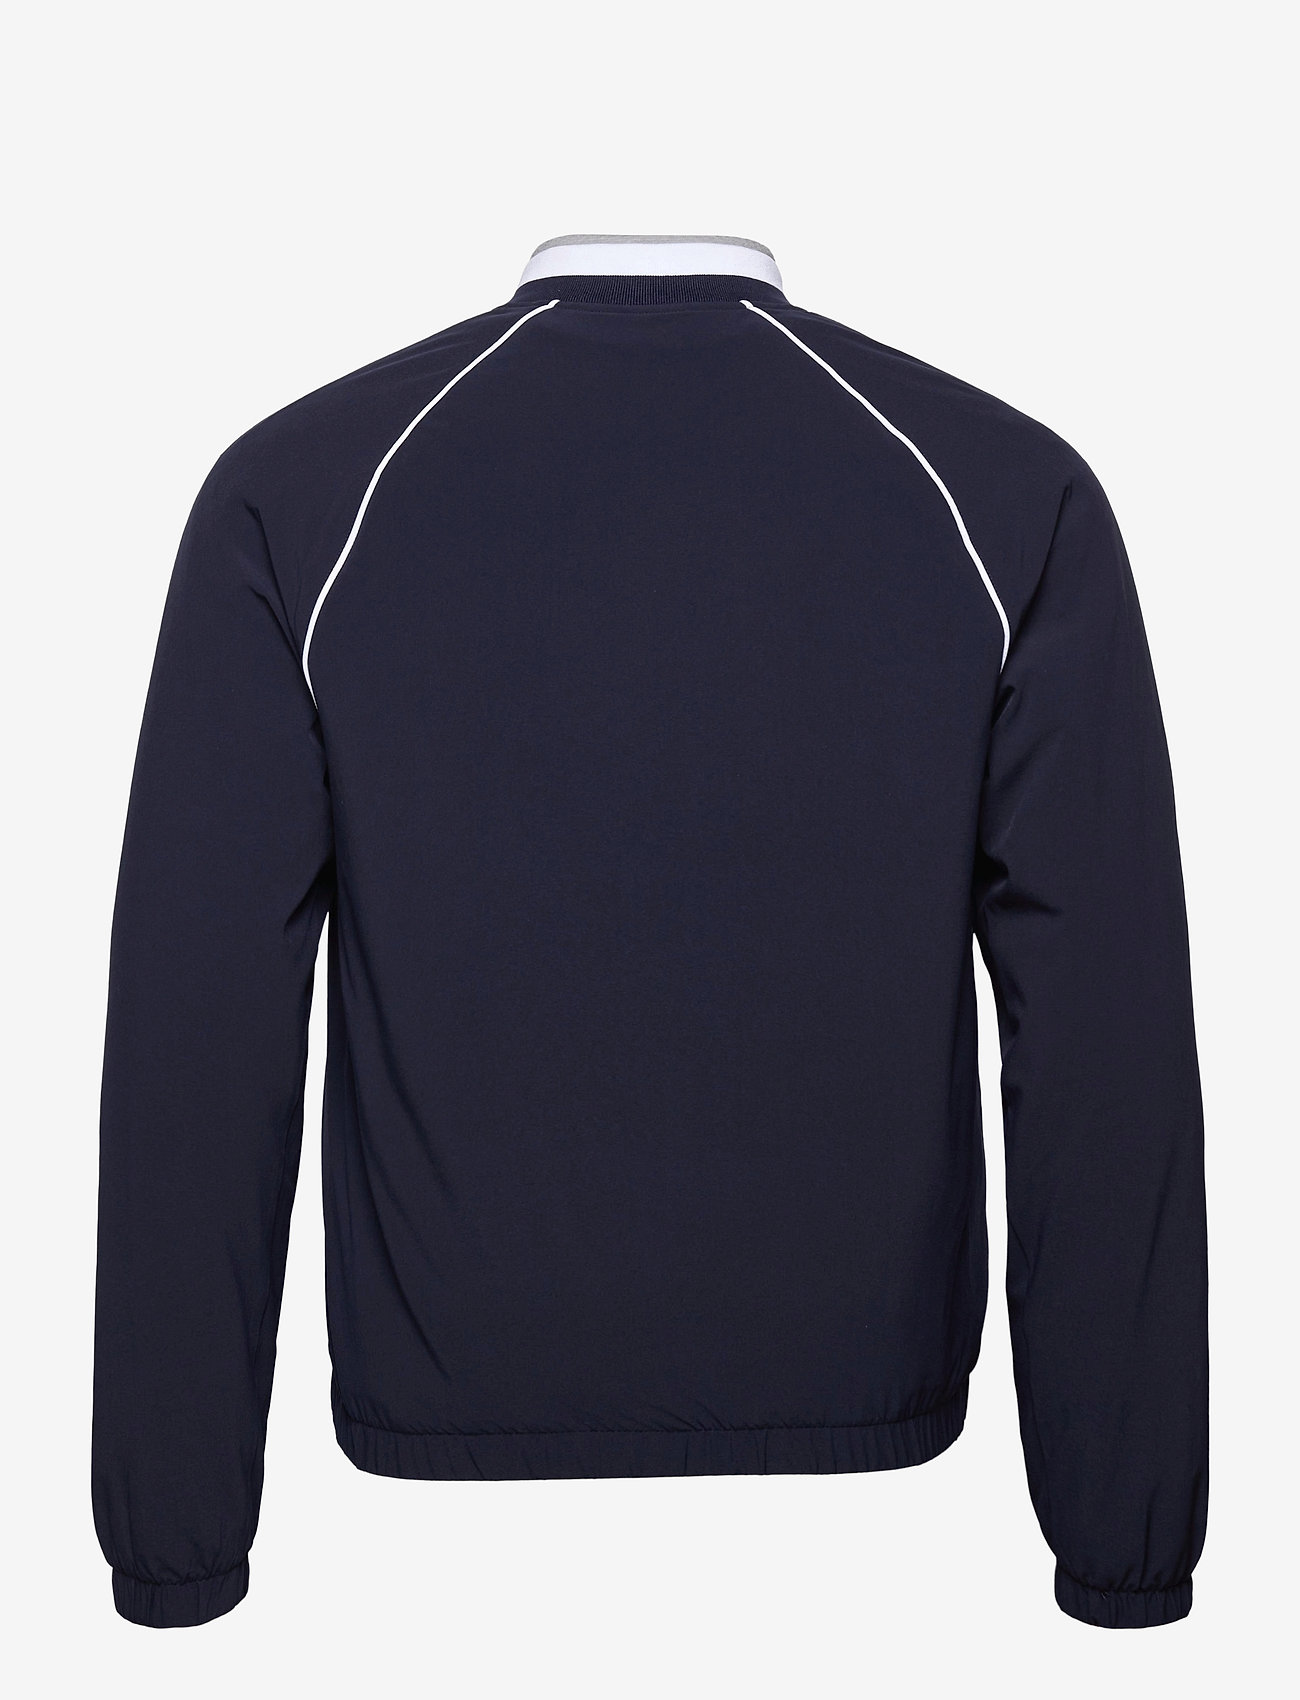 Lacoste - Men s jacket - golf jackets - navy blue/silver chine-white - 1